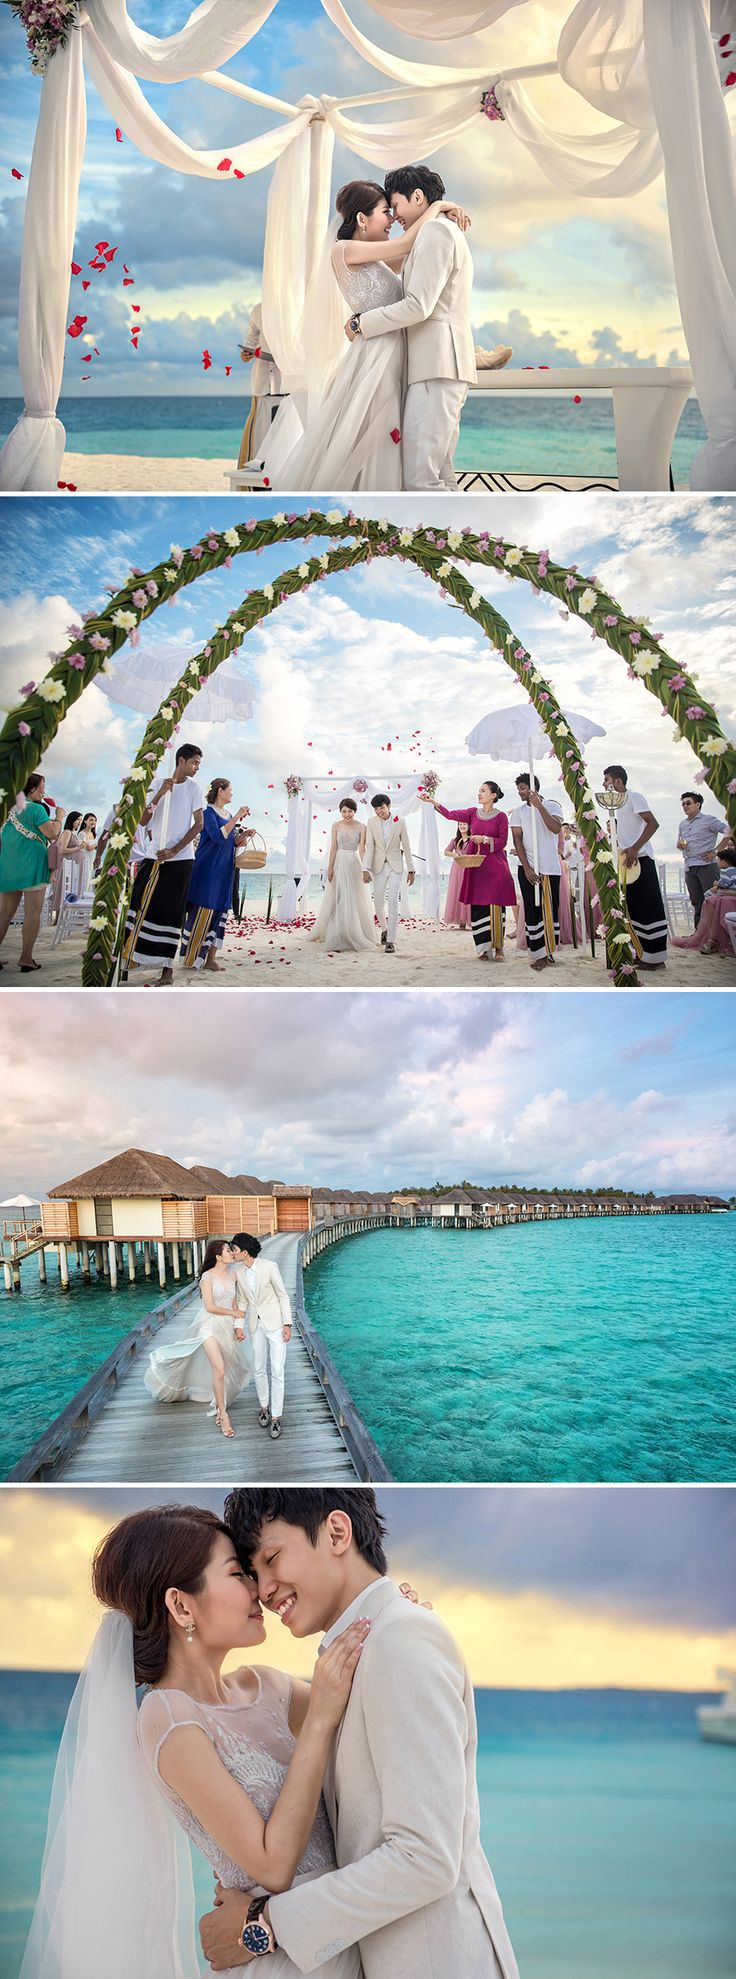 """After ten years together and beautiful pre-wedding shoots in France and the USA, Keda of KEDA.Z Photography and Kelly's wedding day finally arrived. Shot by Mayad Studios, their nuptials were held at Velassaru Maldives, where the couple said their vows against the picturesque cerulean waters of the tropical archipelago. The bride stunned in a beautiful embellished """"Swan Lake"""" Paolo Sebastian gown from The Proposal in Singapore."""